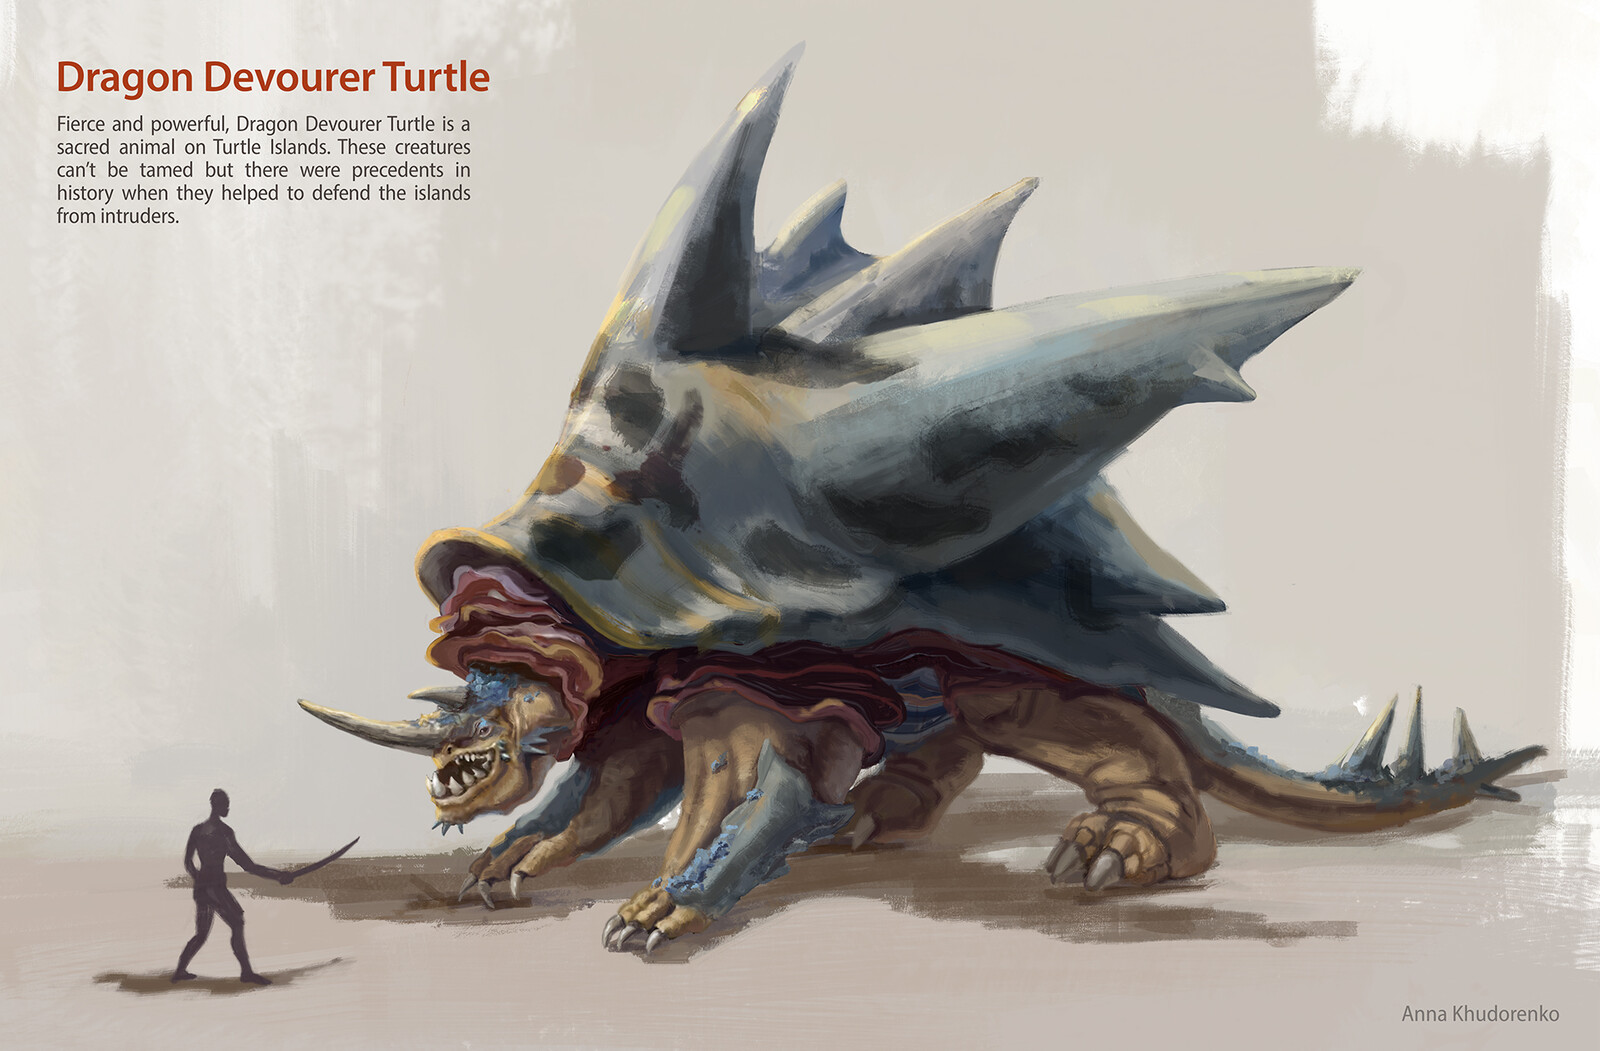 Game boss: Dragon Devourer Turtle